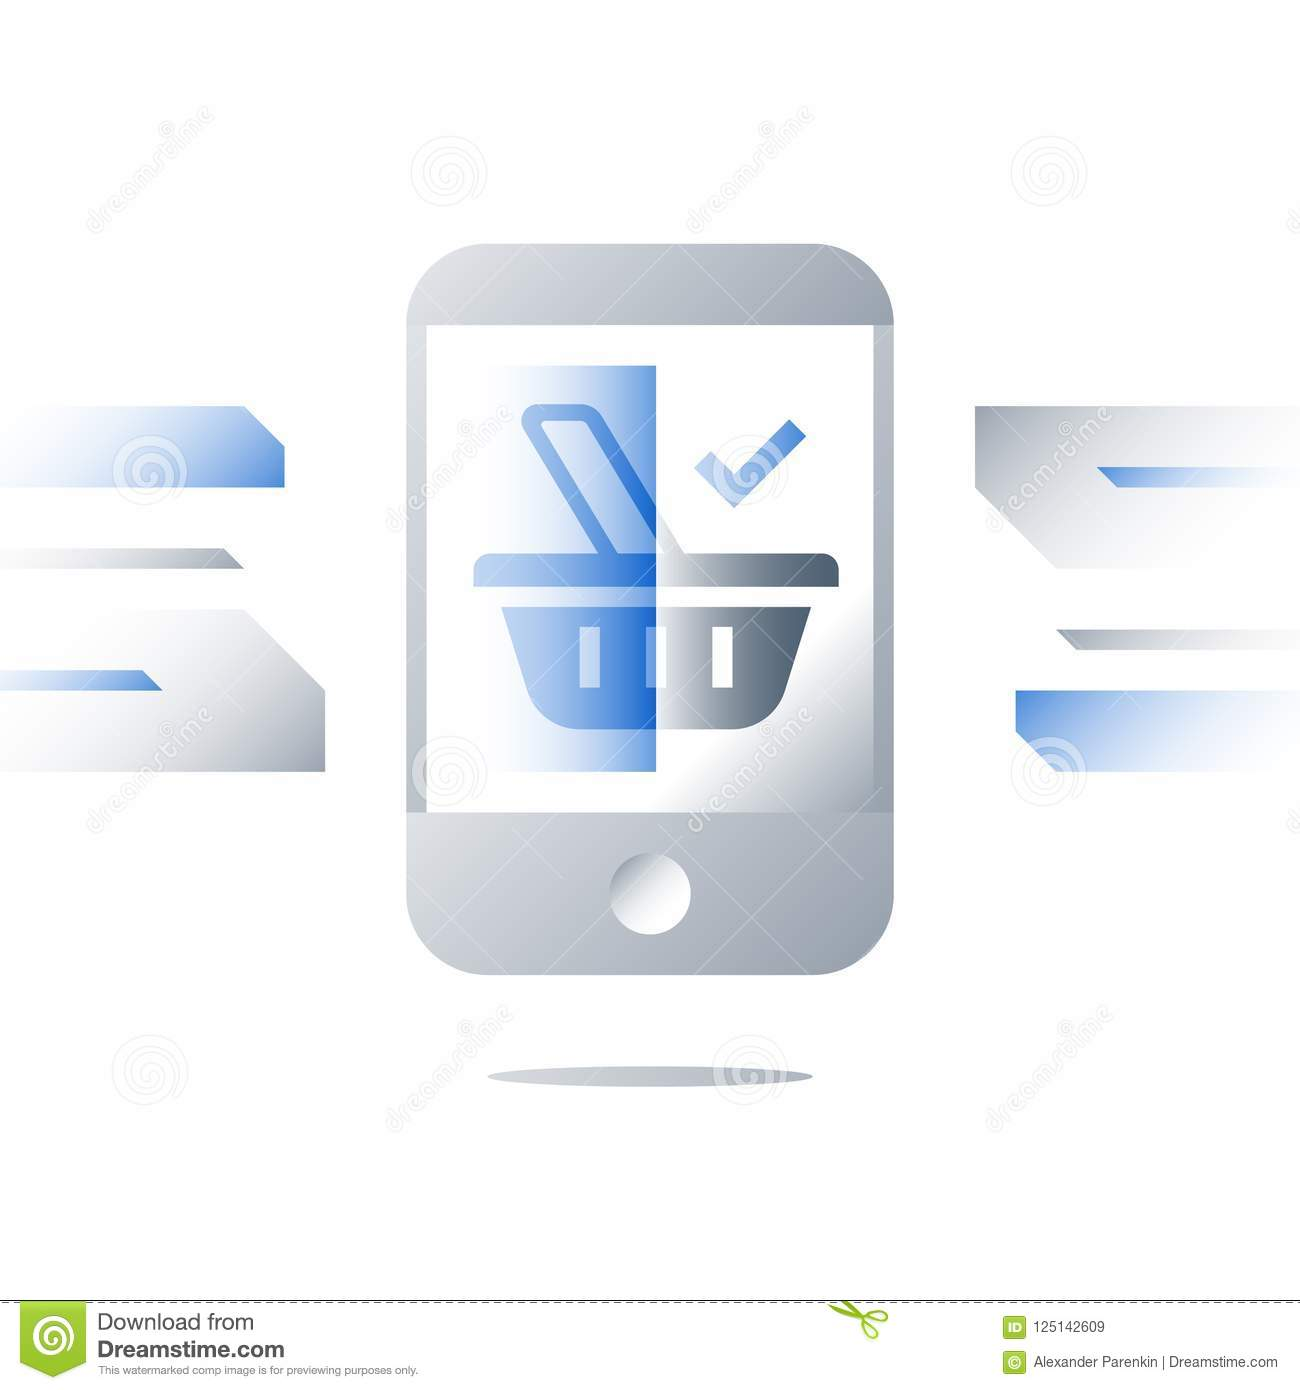 E-commerce Concept, Grocery Basket Symbol On Mobile Phone